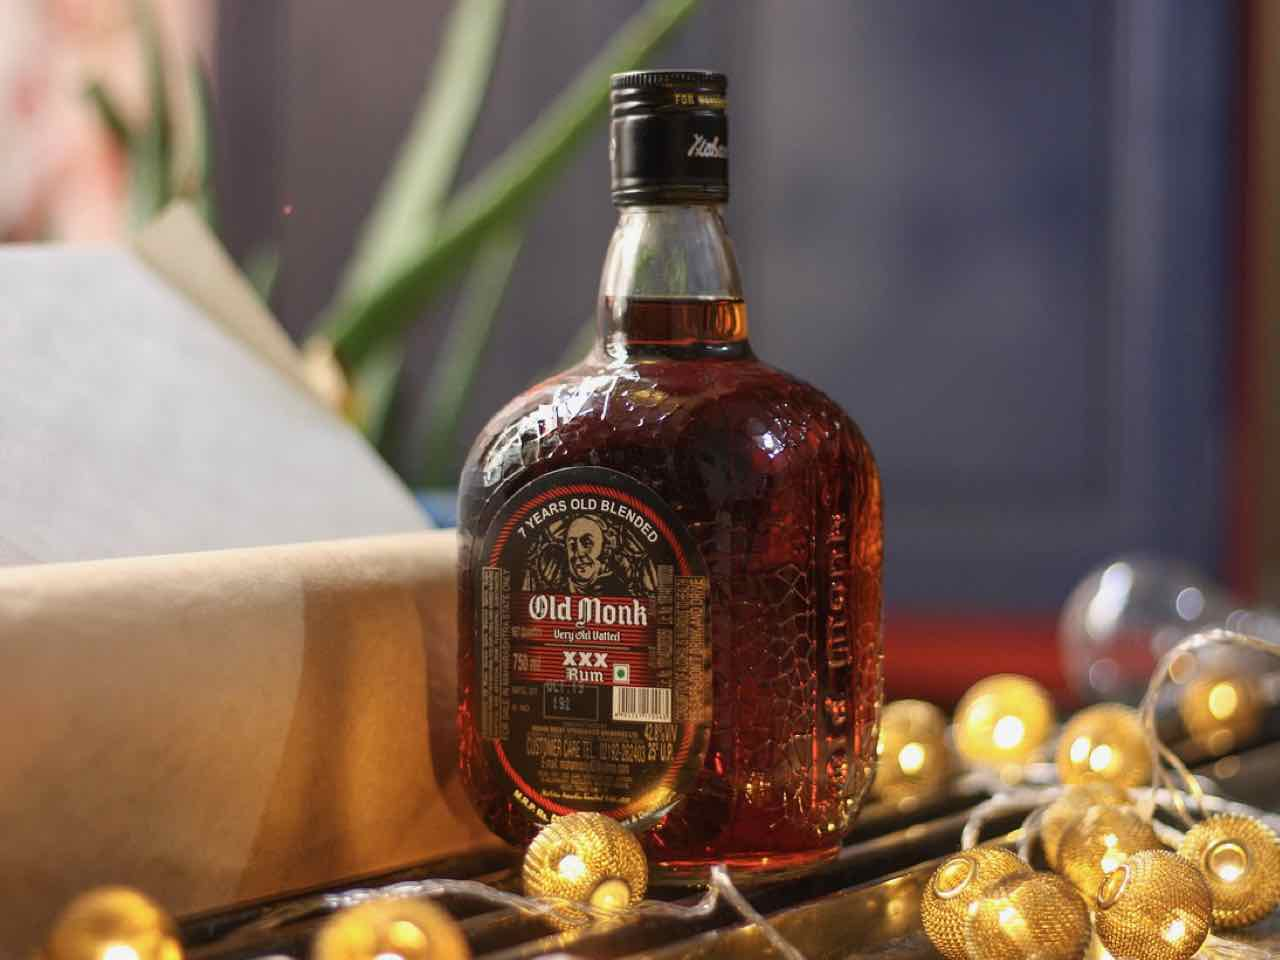 Defending An Iconic Mark: 'Old Monk'